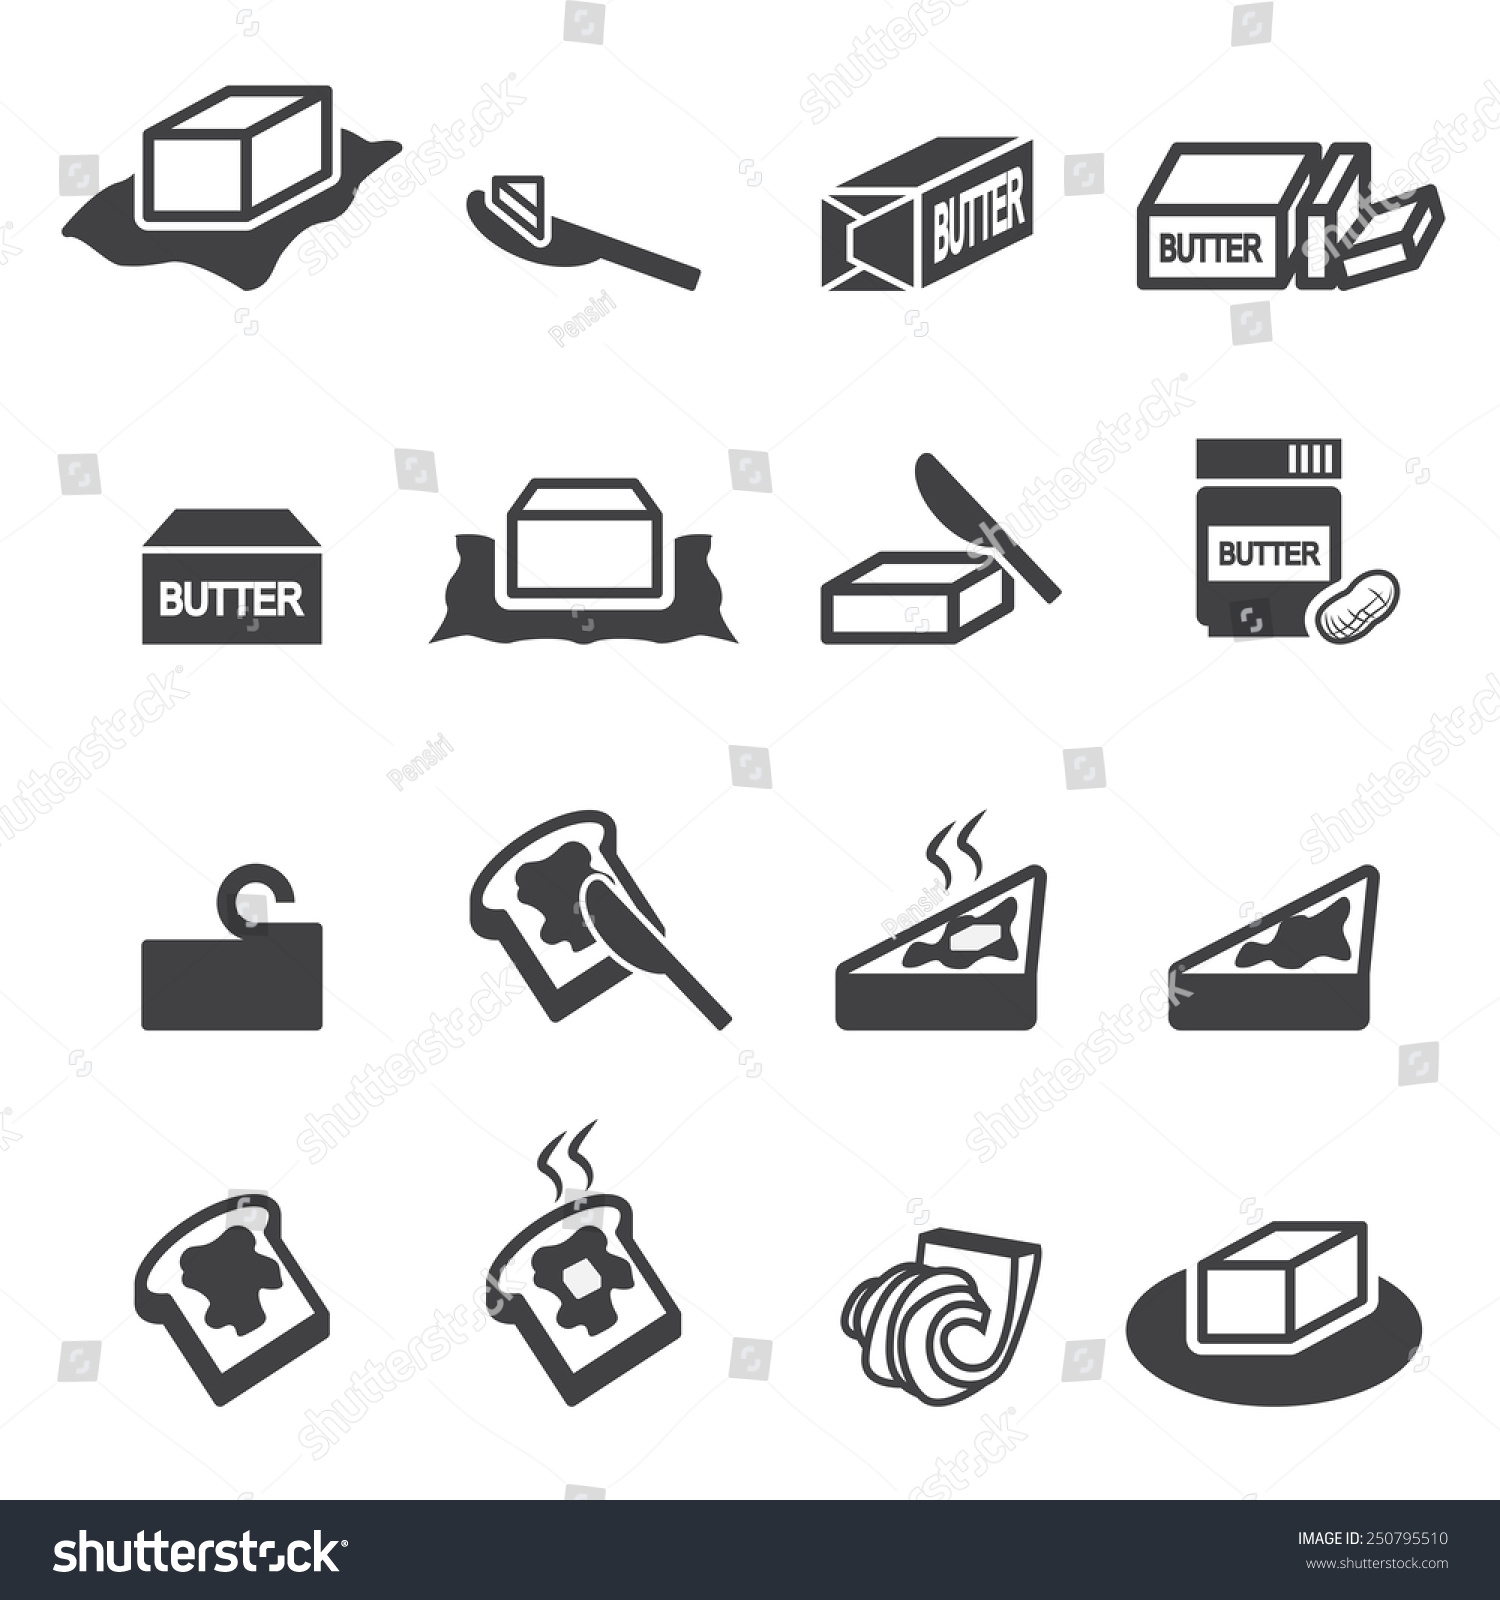 Butter Icon Stock Vector 250795510 : Shutterstock